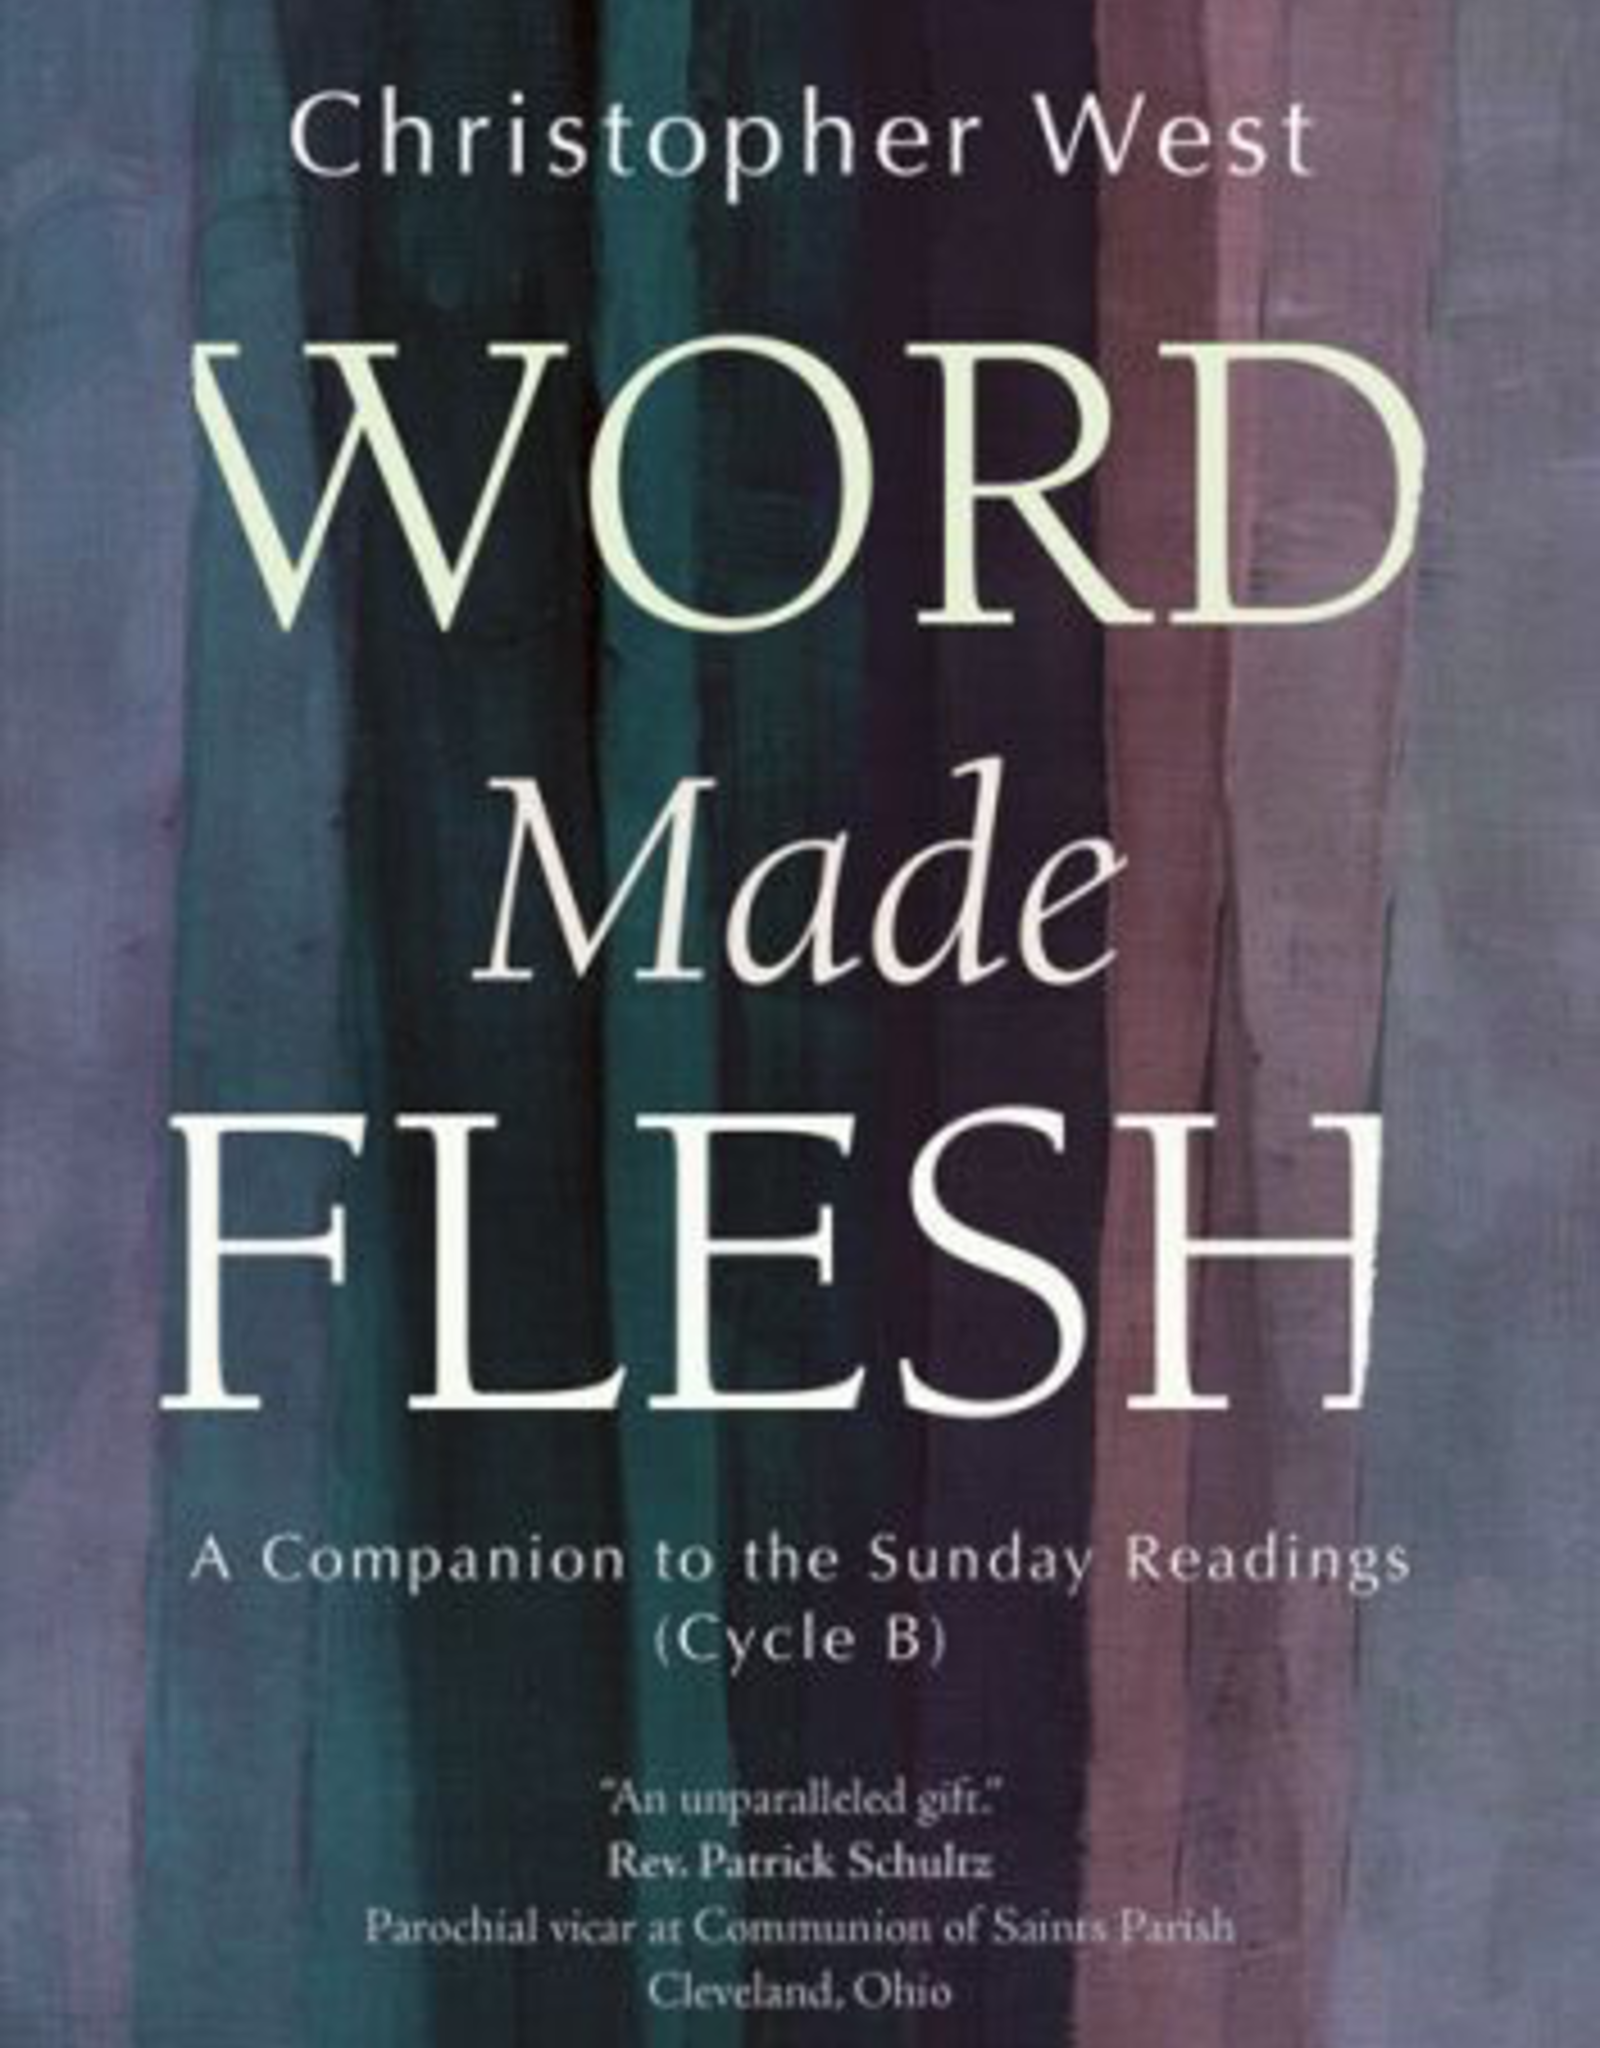 Ave Maria Press Word Made Flesh:  A Companion to the Sunday Readings (Cycle B), by Christopher West (paperback)